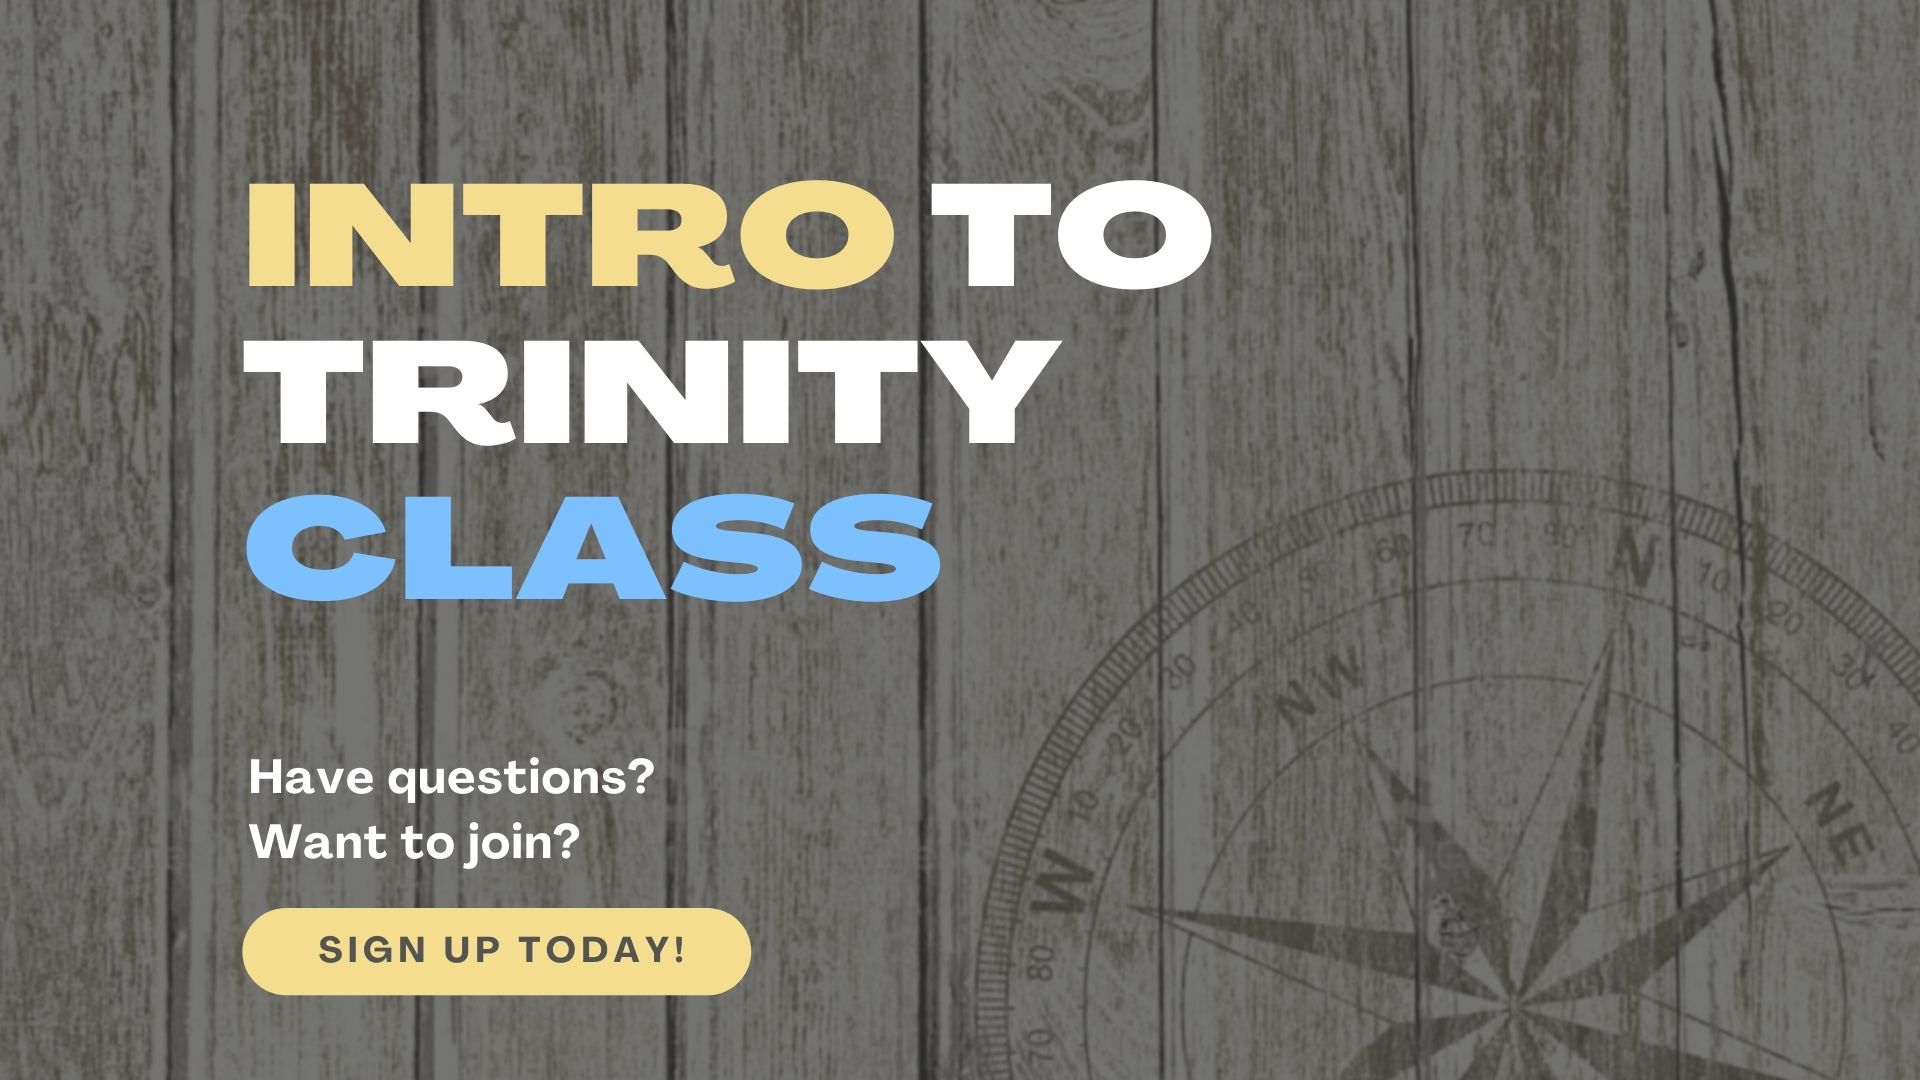 Intro To Trinity Class Screen image